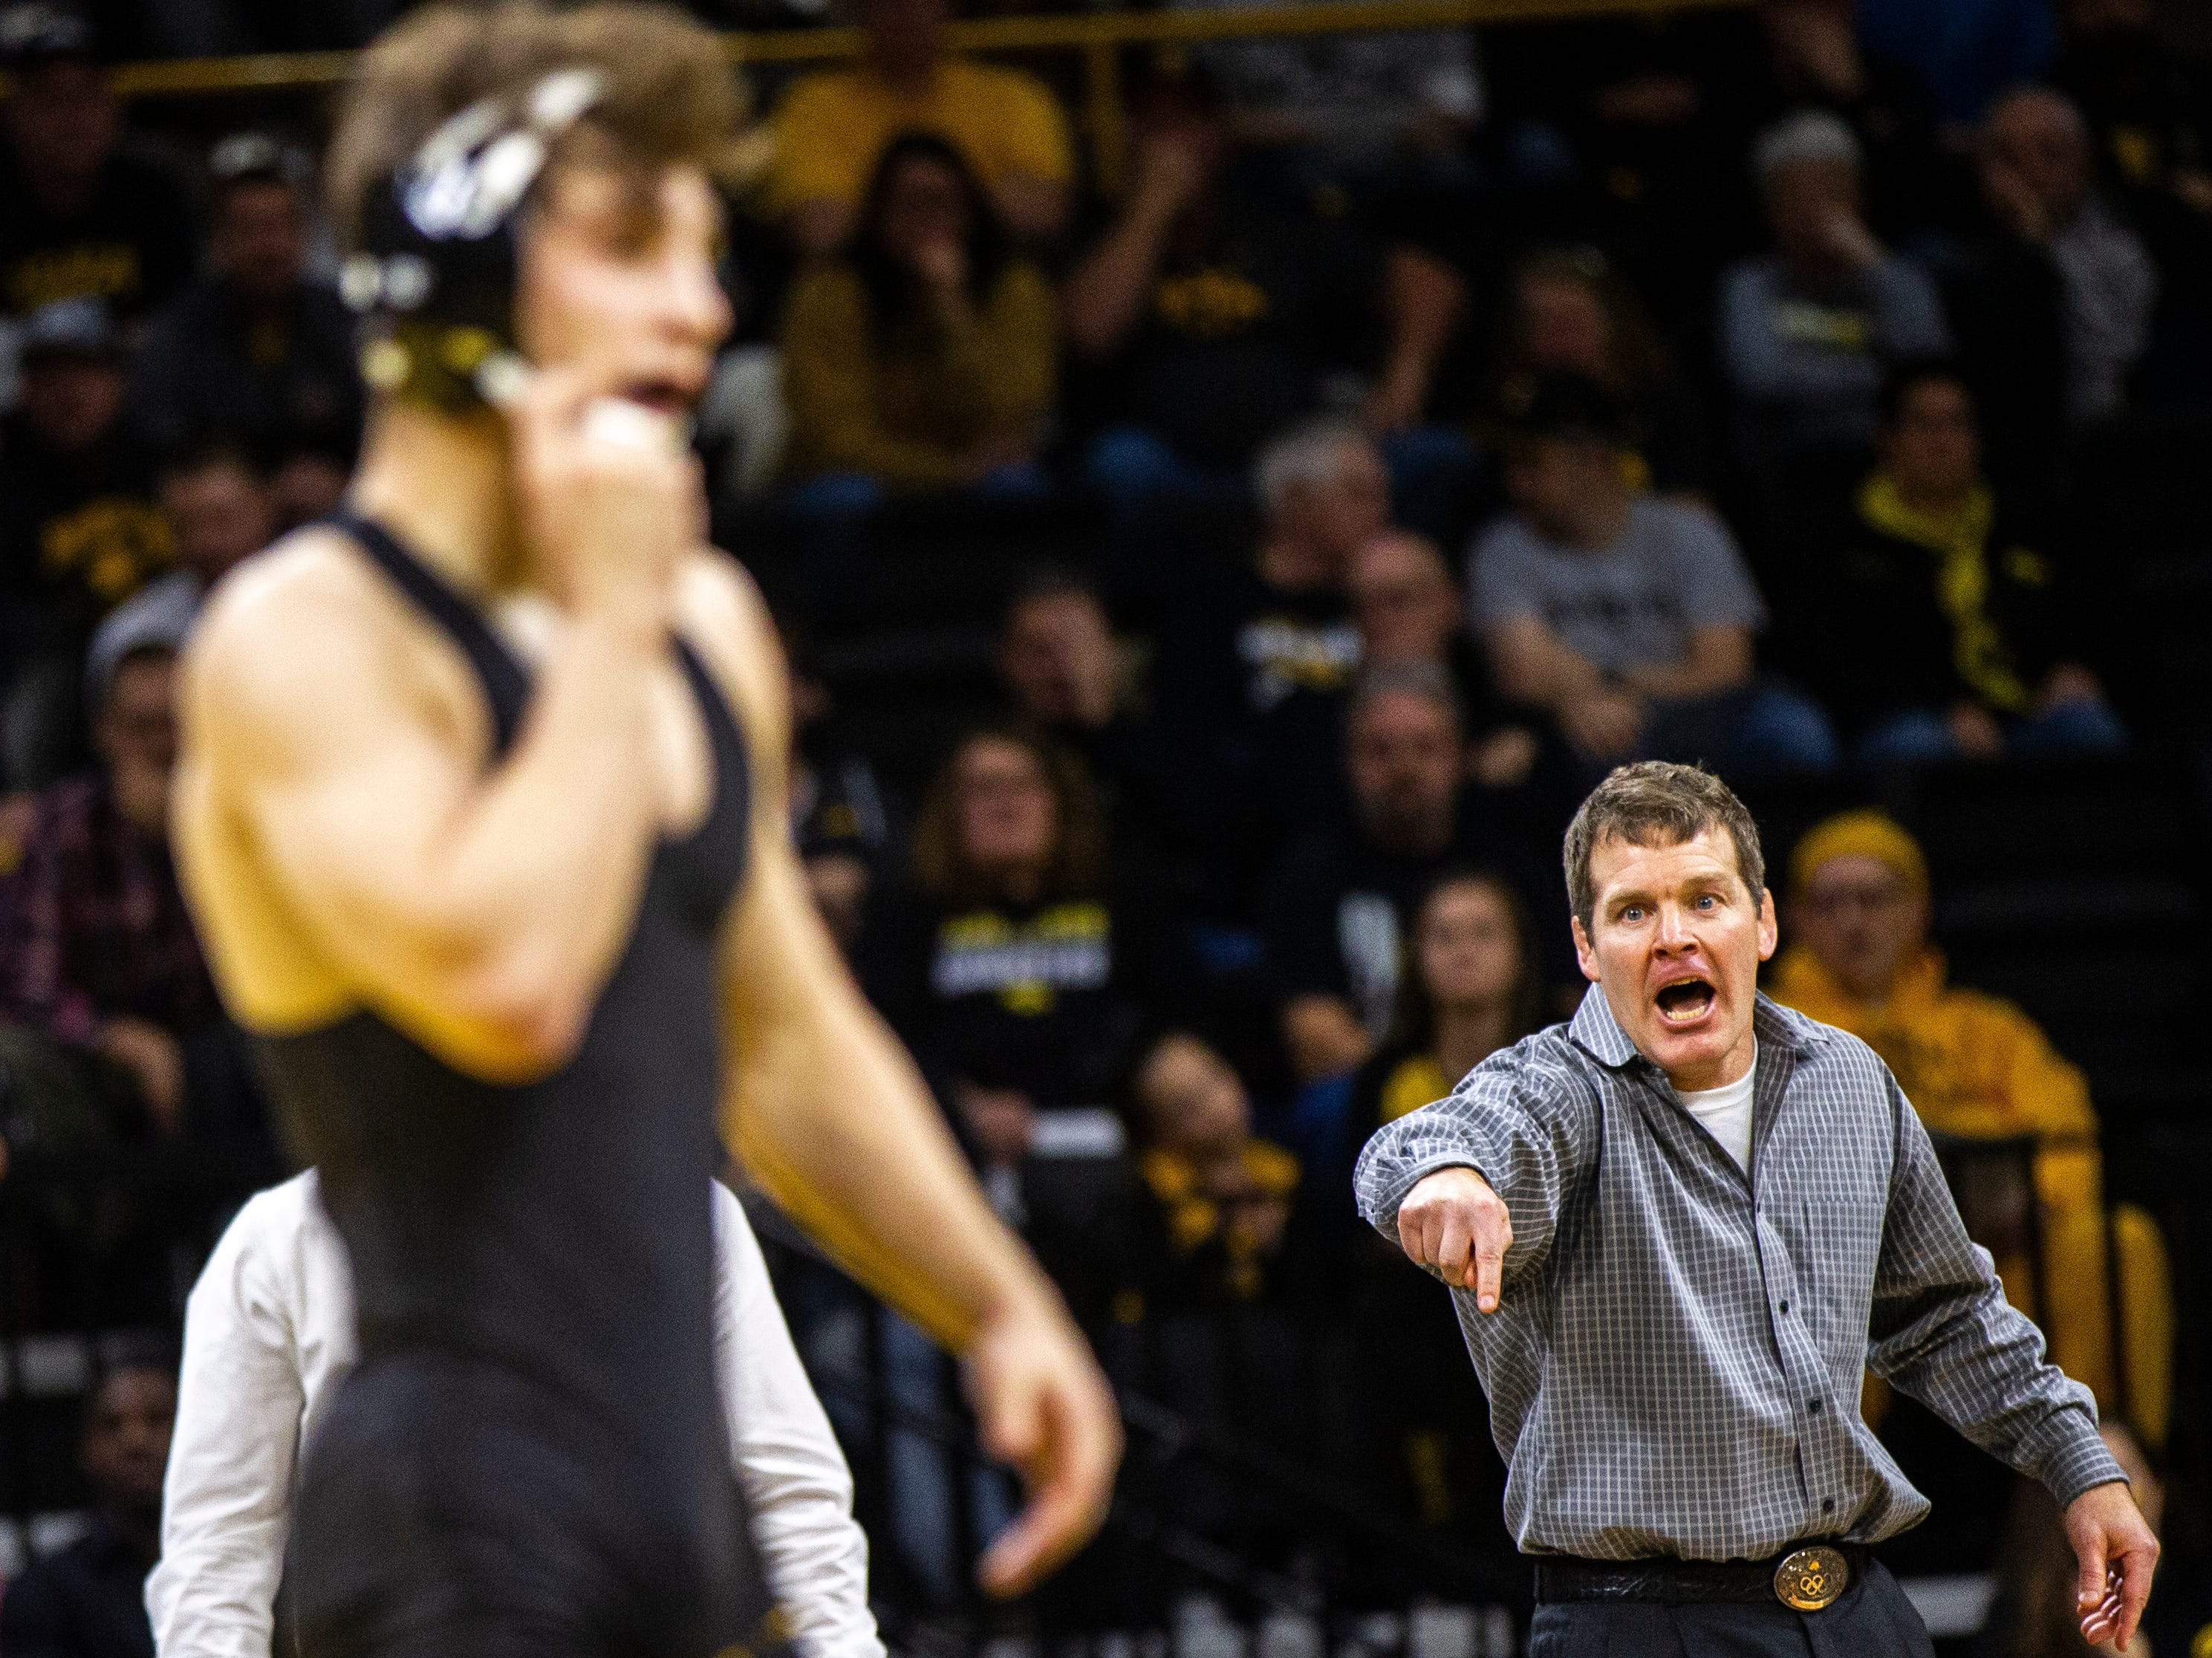 Iowa head coach Tom Brands calls out to Austin DeSanto during his match at 133 during a Big Ten Conference NCAA wrestling dual on Saturday, Nov. 24, 2018, at Carver-Hawkeye Arena in Iowa City.